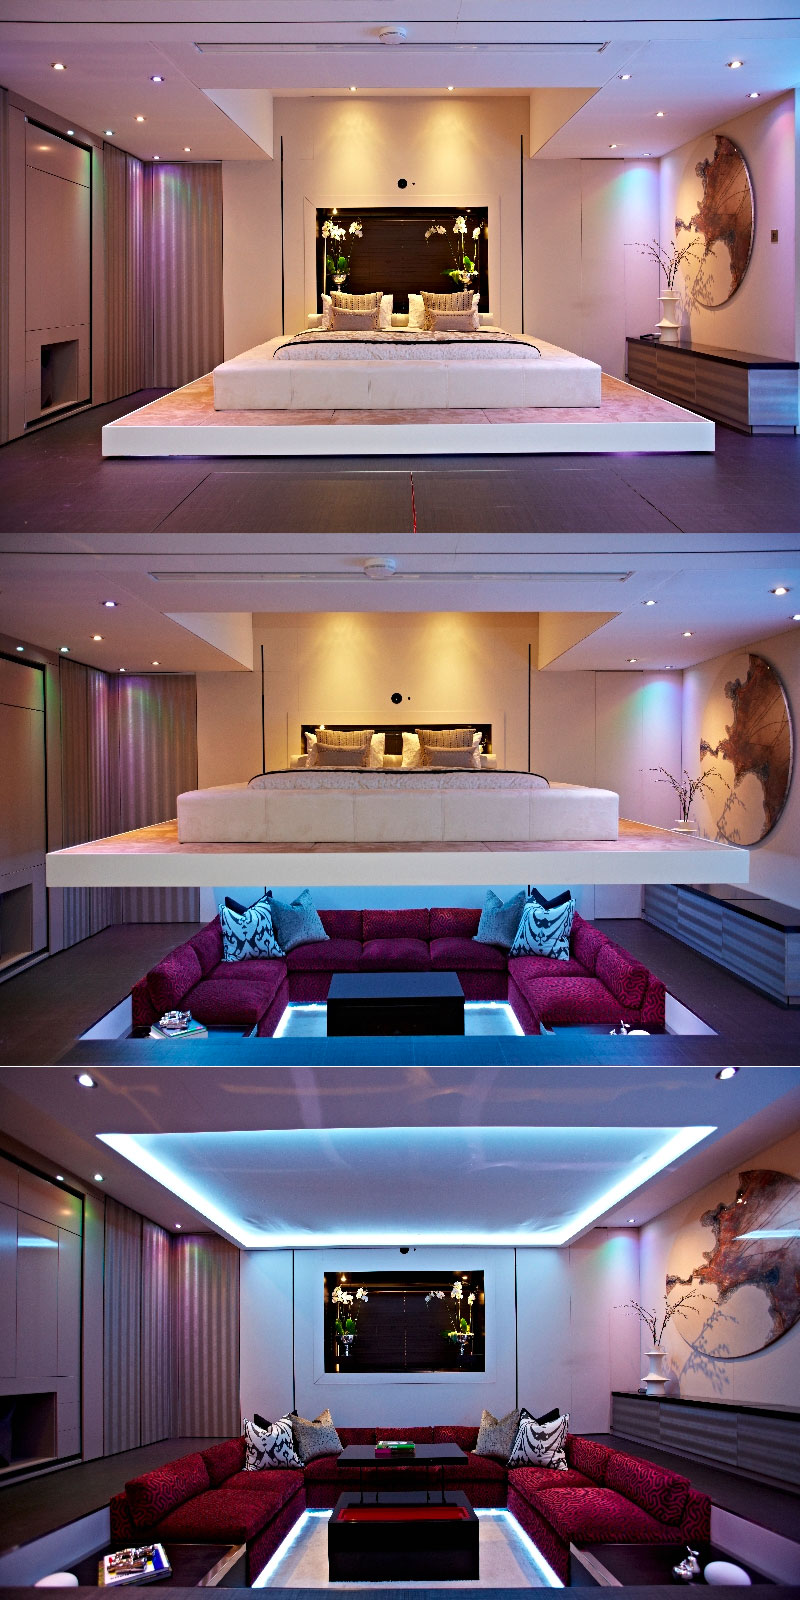 15-Bed-in-ceiling